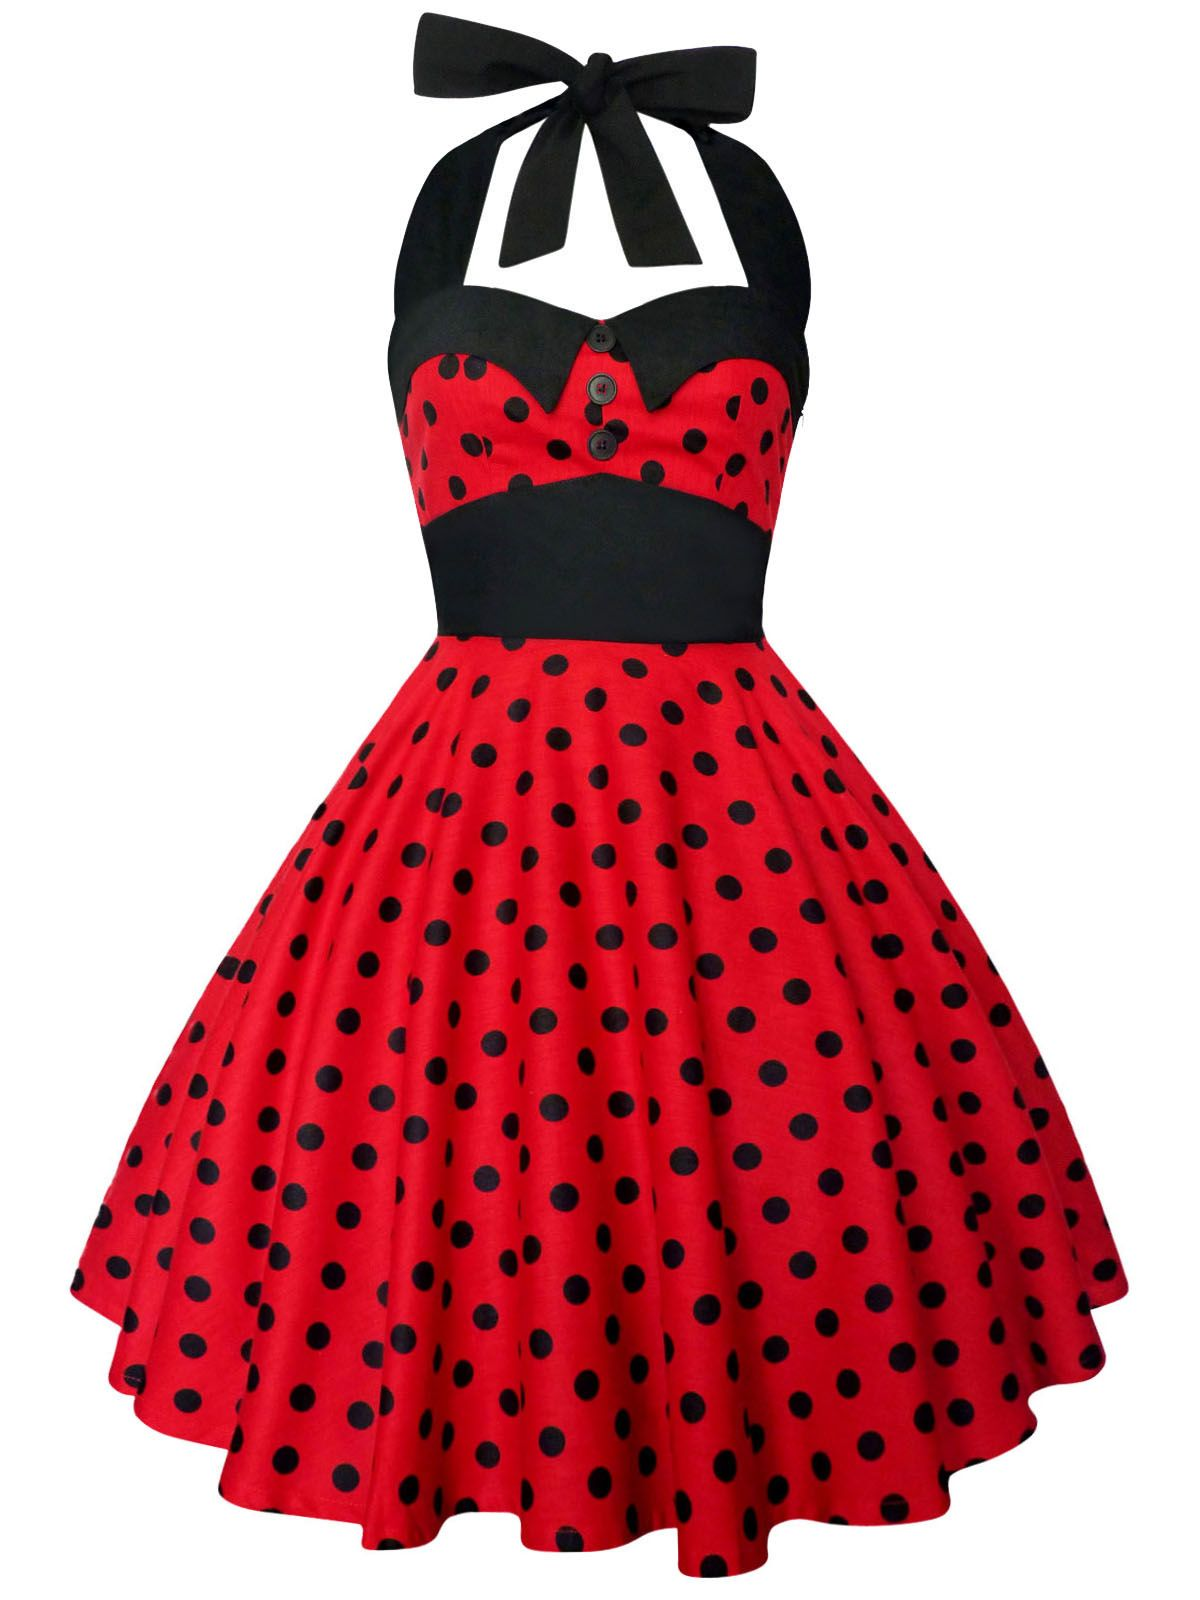 8e955621b6 Rockabilly Red Black Polka Dot Dress Gothic Punk Emo 50s Swing Retro Party